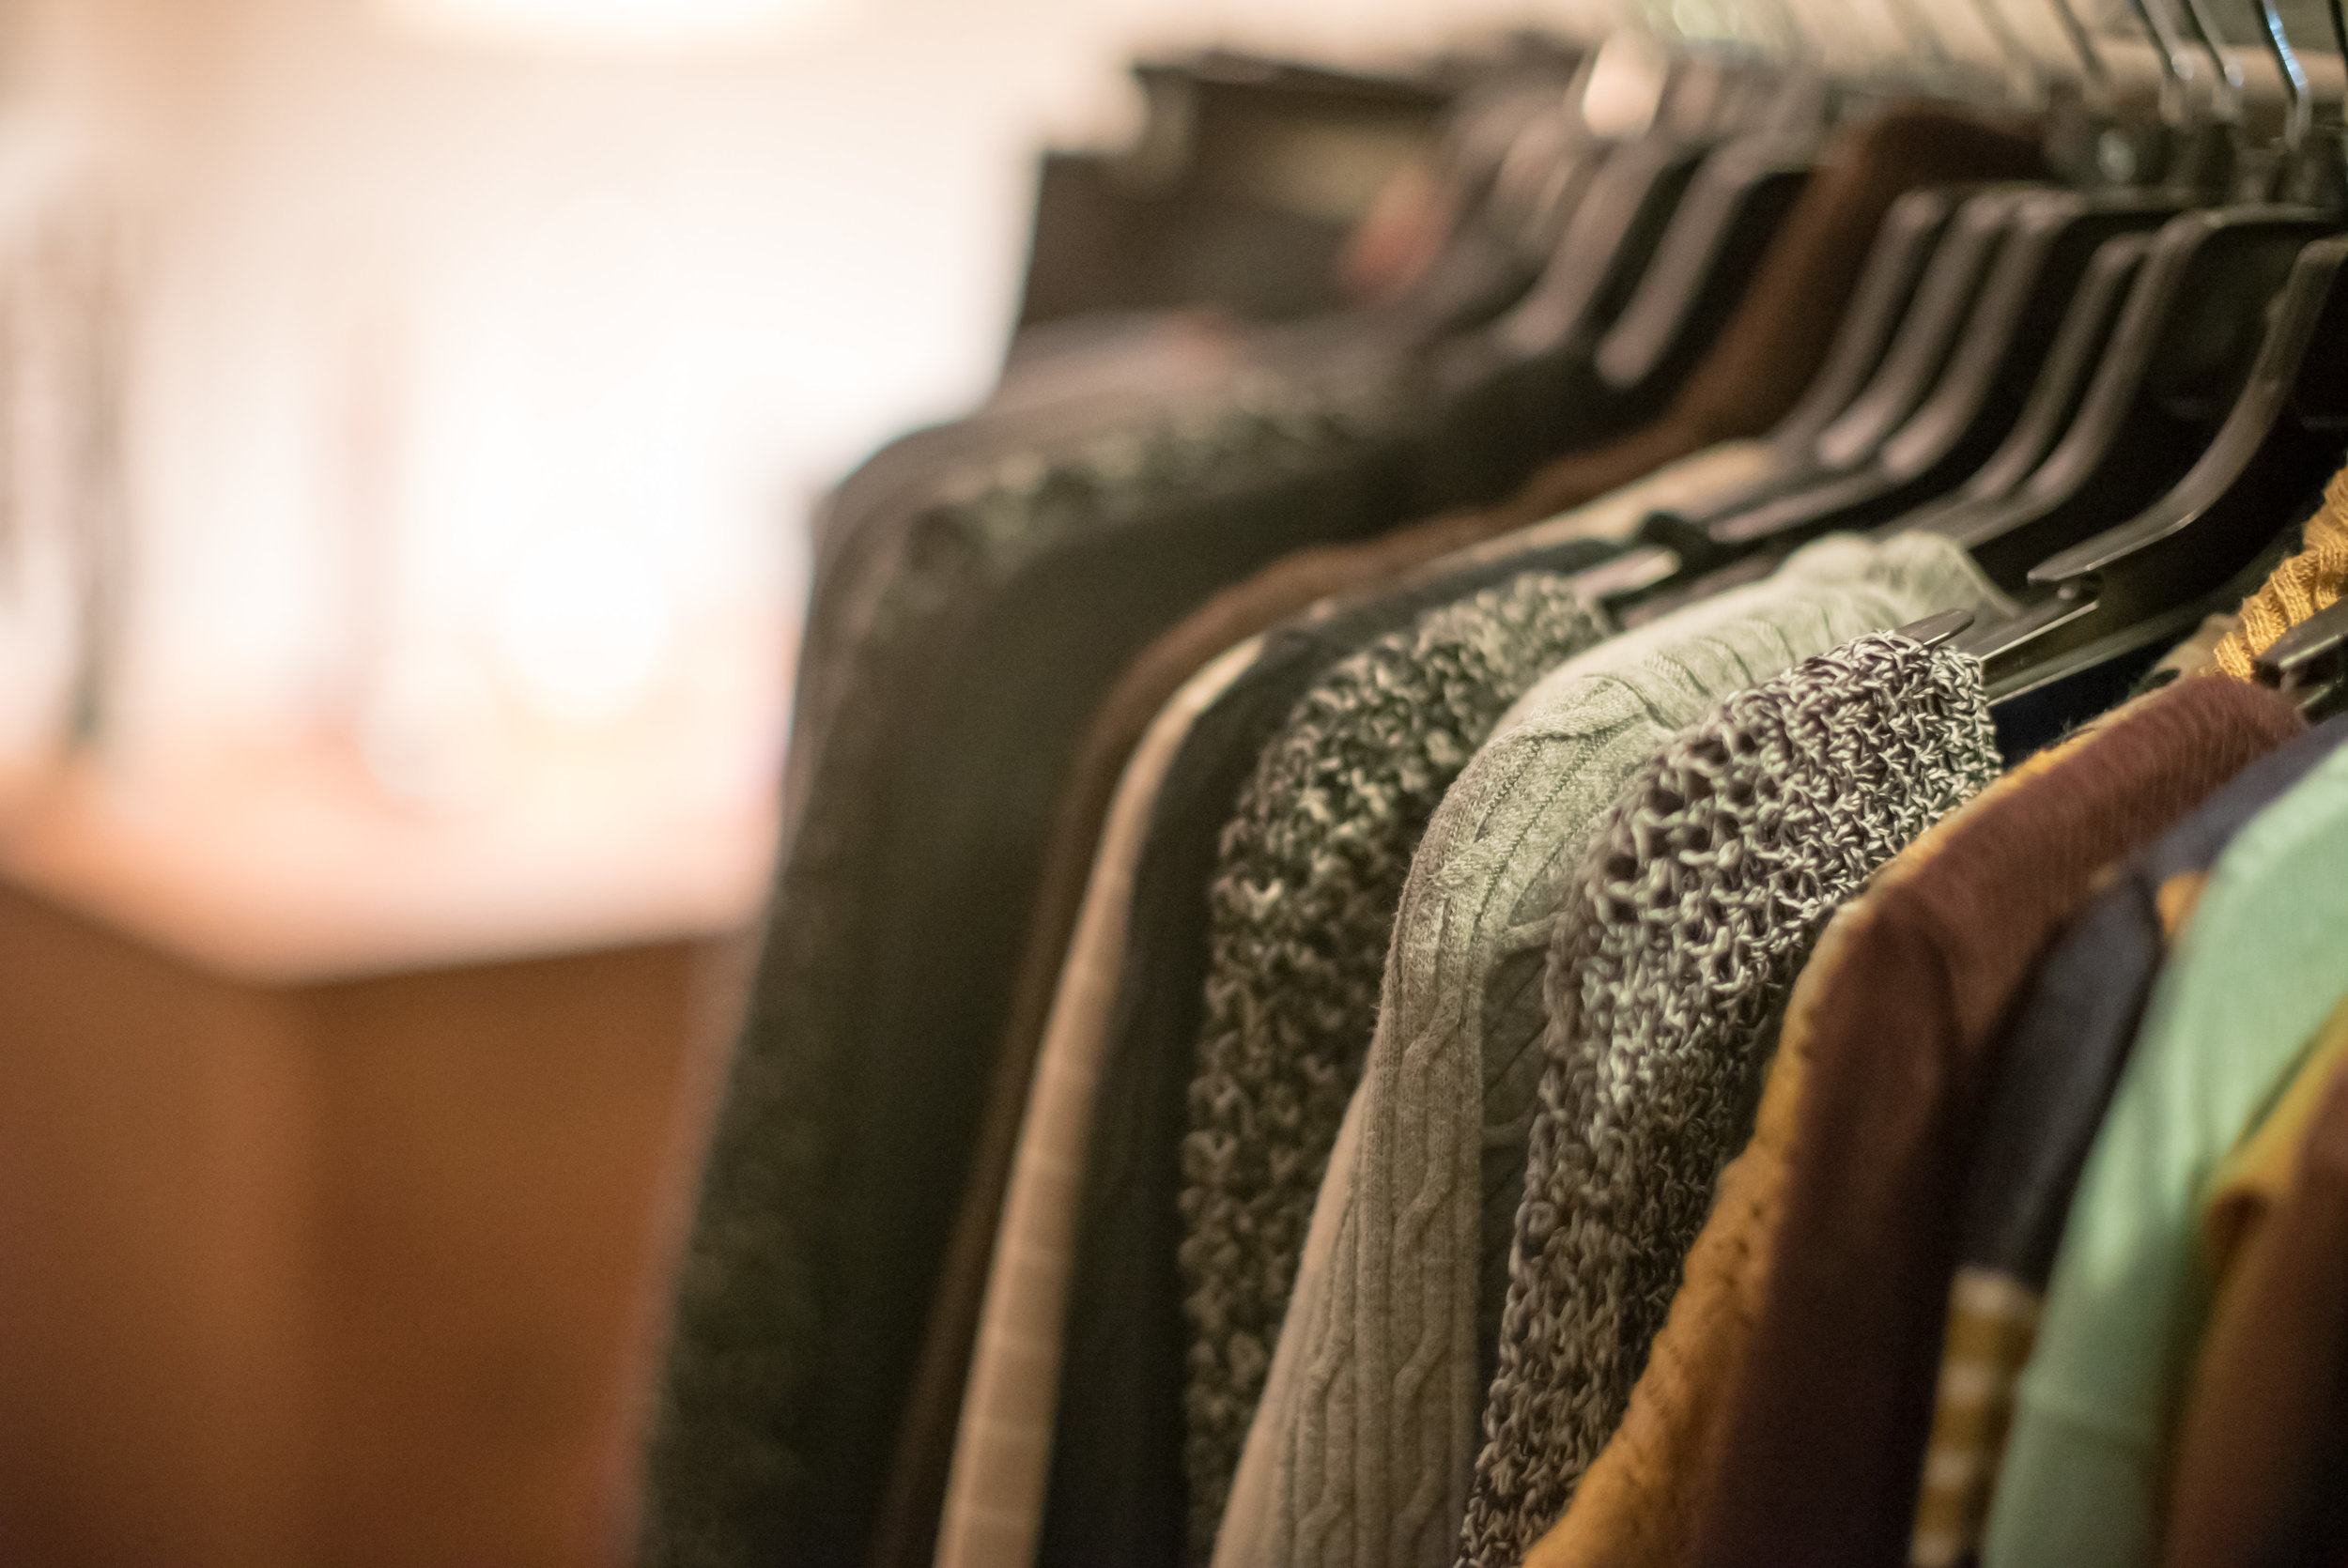 Our Resource Center provides clothing free of charge